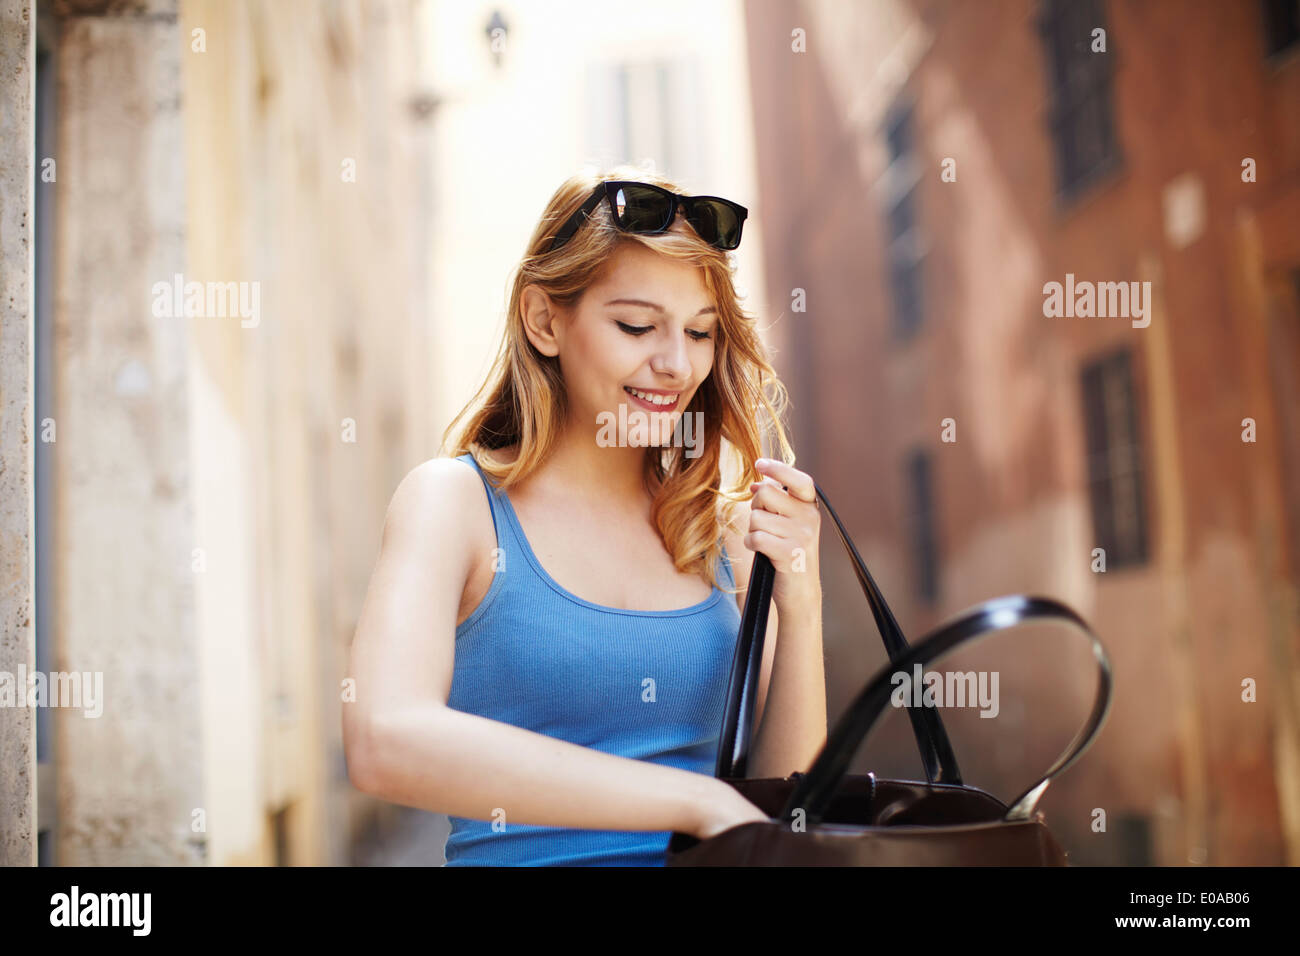 Young woman searching in shoulder bag, Rome, Italy Stock Photo